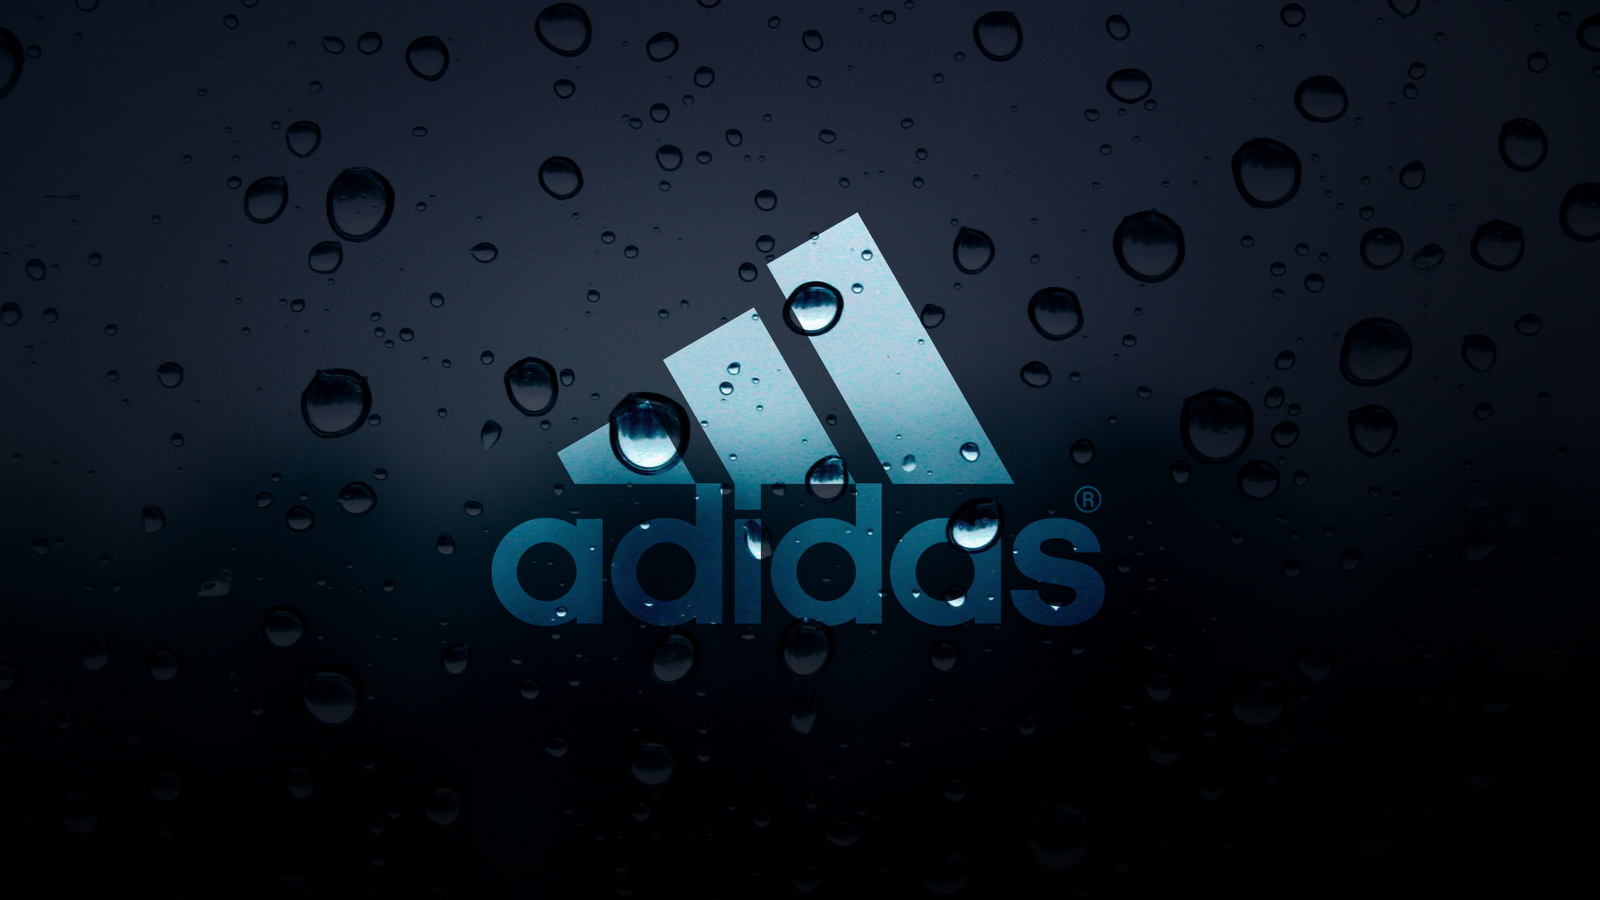 Colorful Adidas Wallpapers Hd Resolution